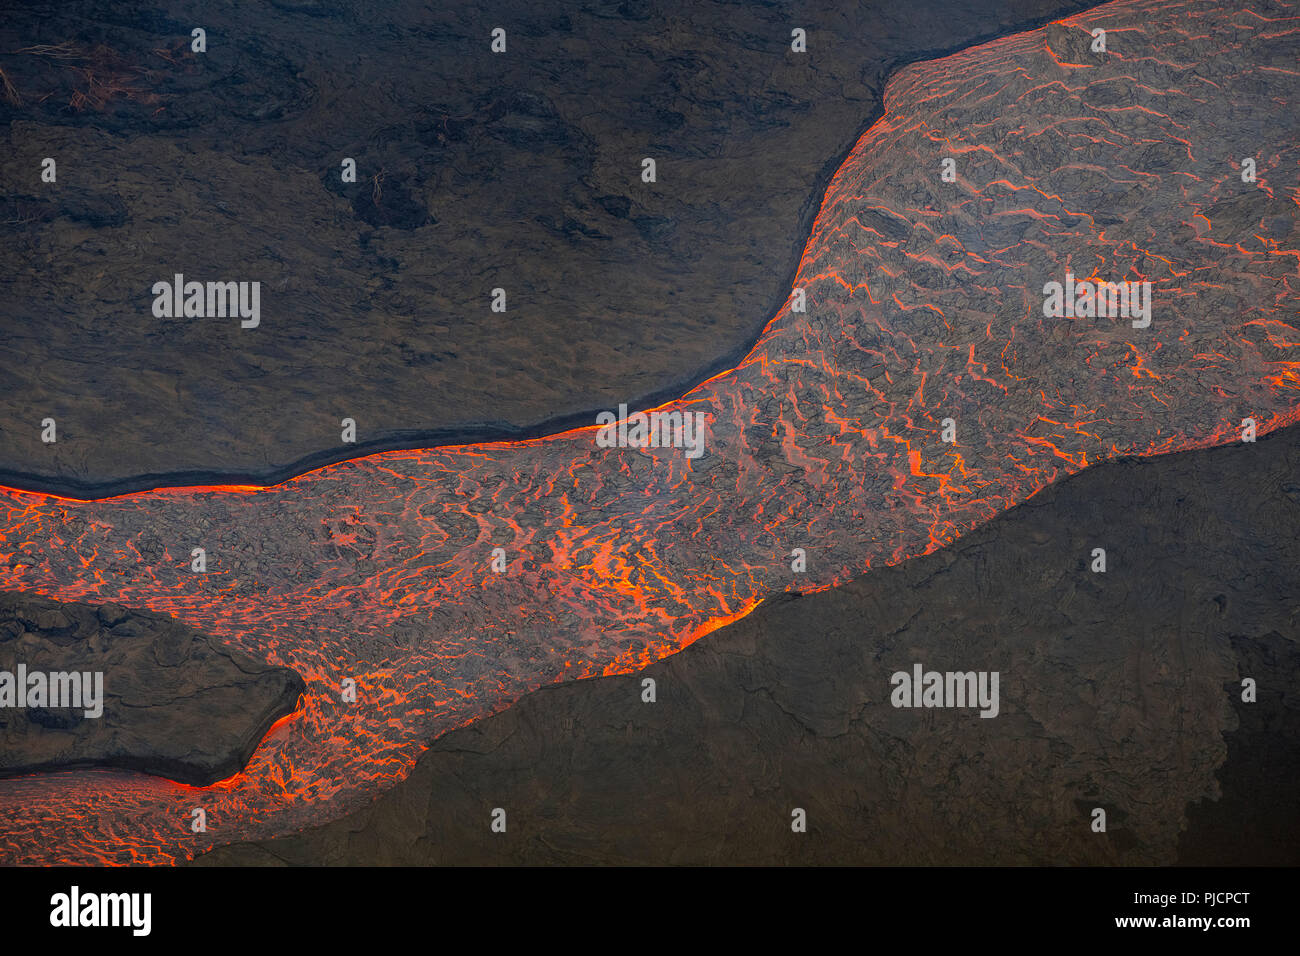 lava erupted from fissure 8 of the Kilauea Volcano east rift zone near Pahoa flows as a glowing river through lower Puna District, Hawaii Island - Stock Image